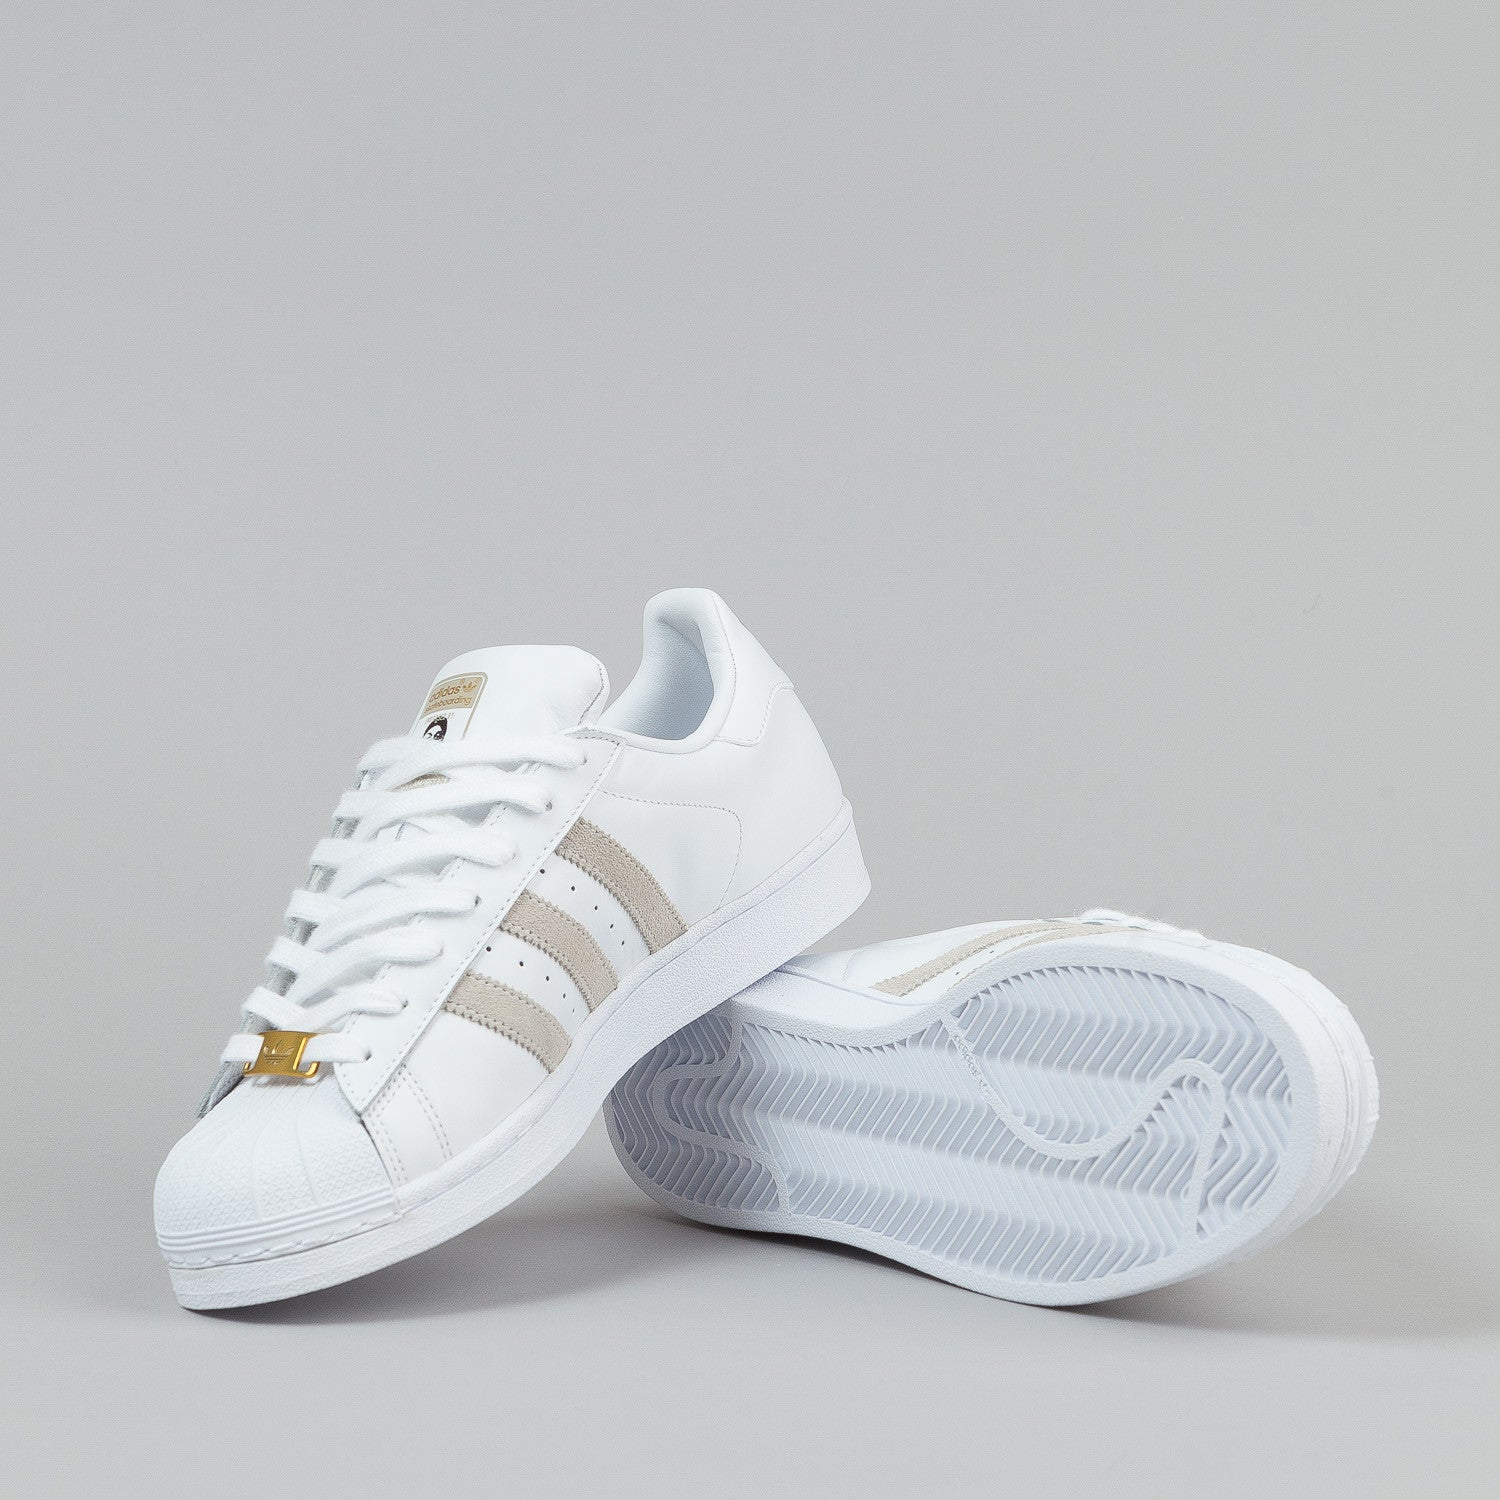 Adidas Superstar Up W Rita Ora White Black Dragon junior